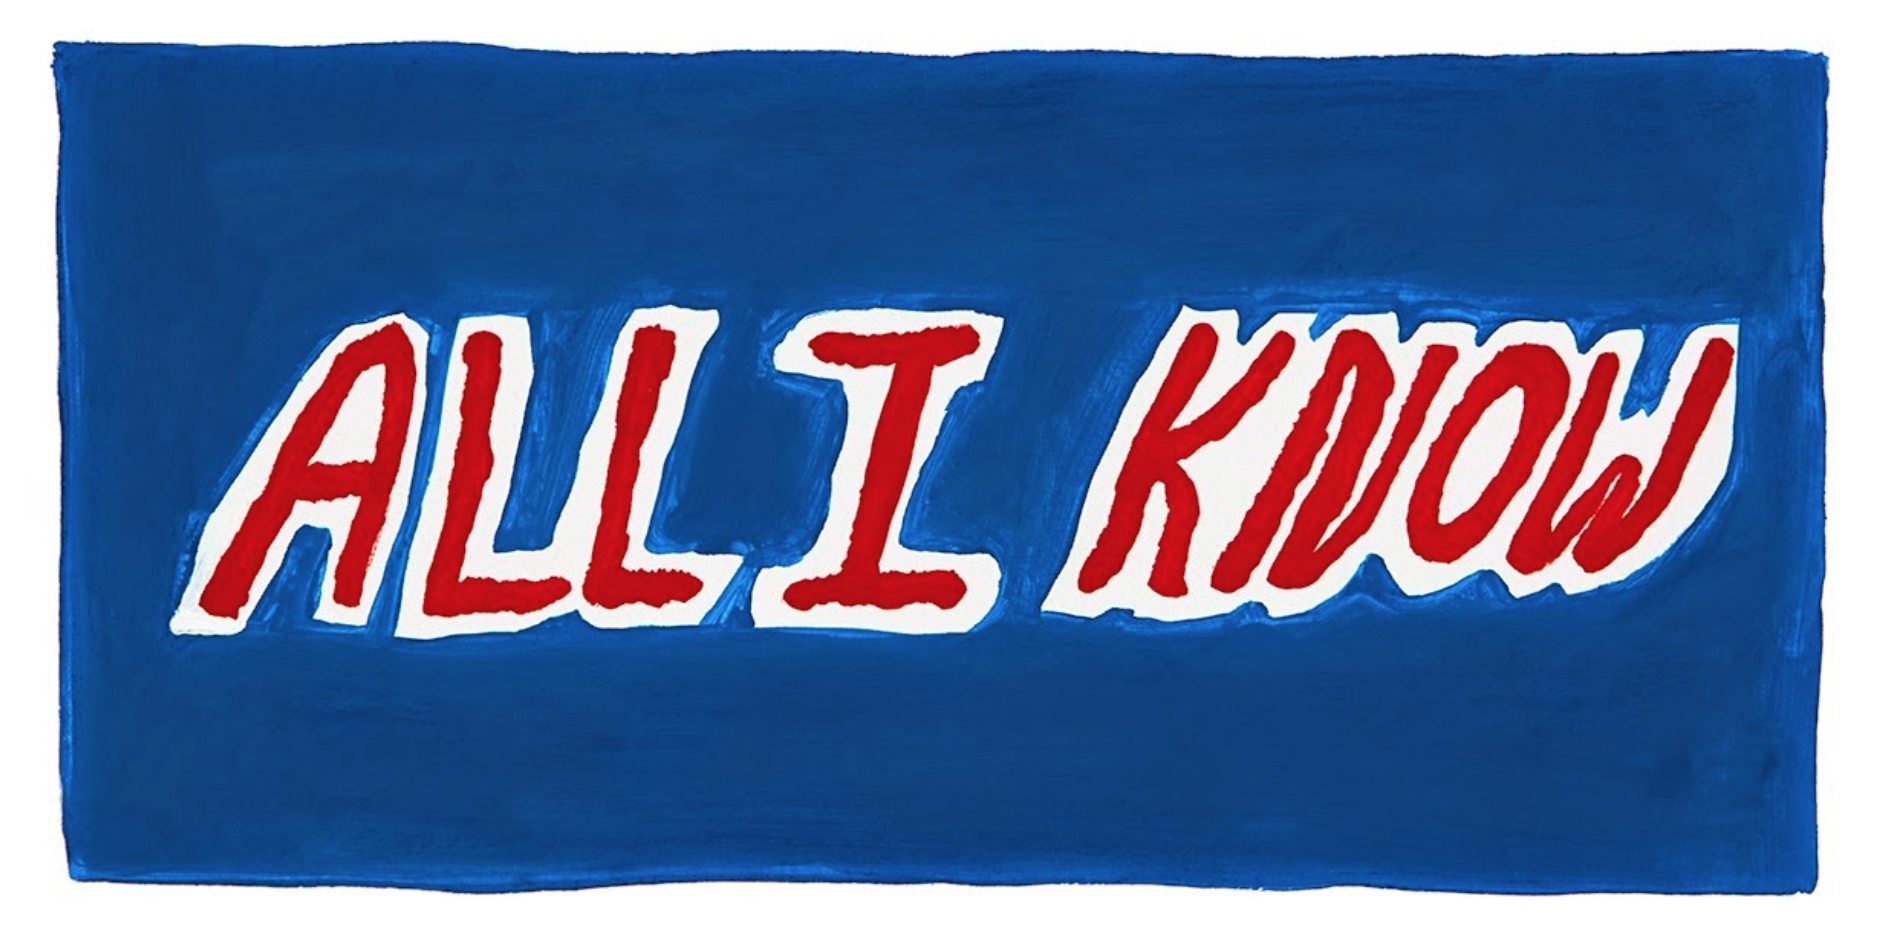 ALL I KNOW, 2014